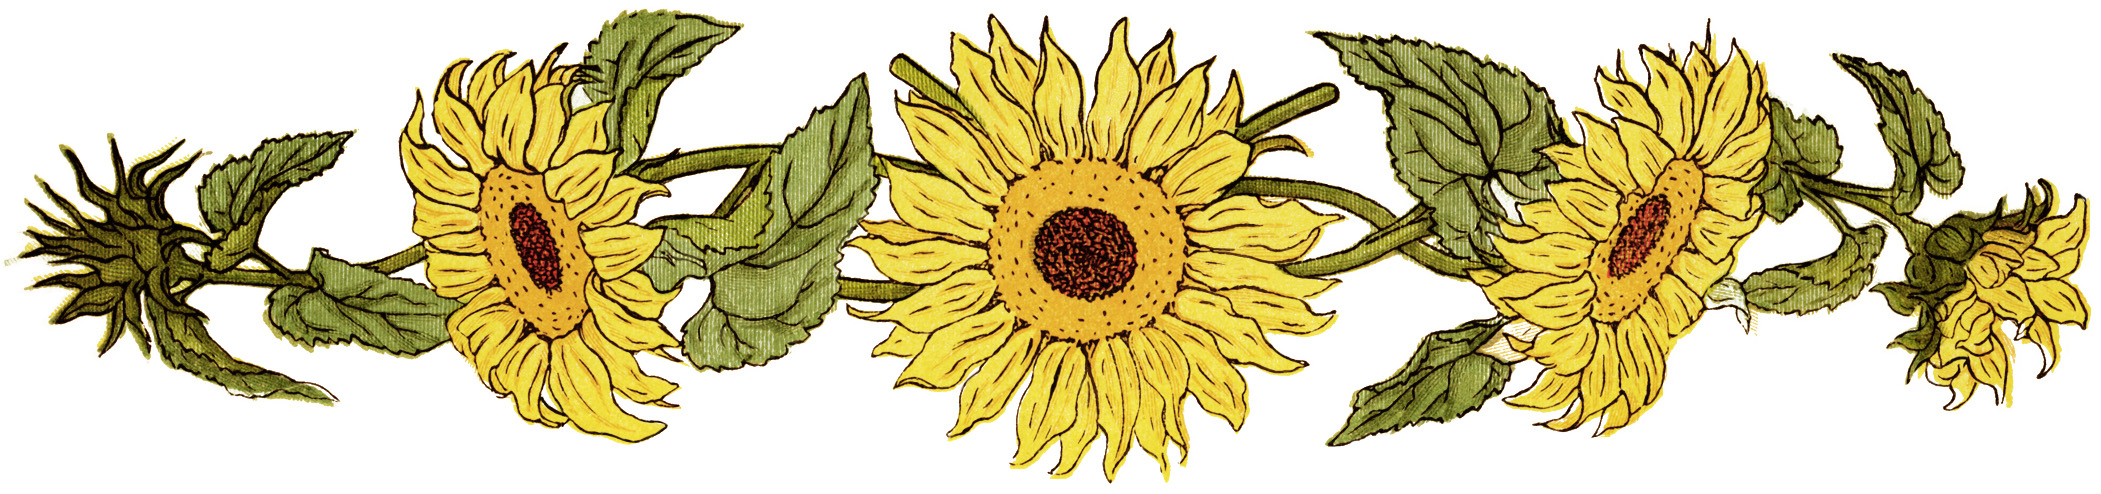 Flower Sunflower Clipart Free Printable Sunflower Sunflower Graphic